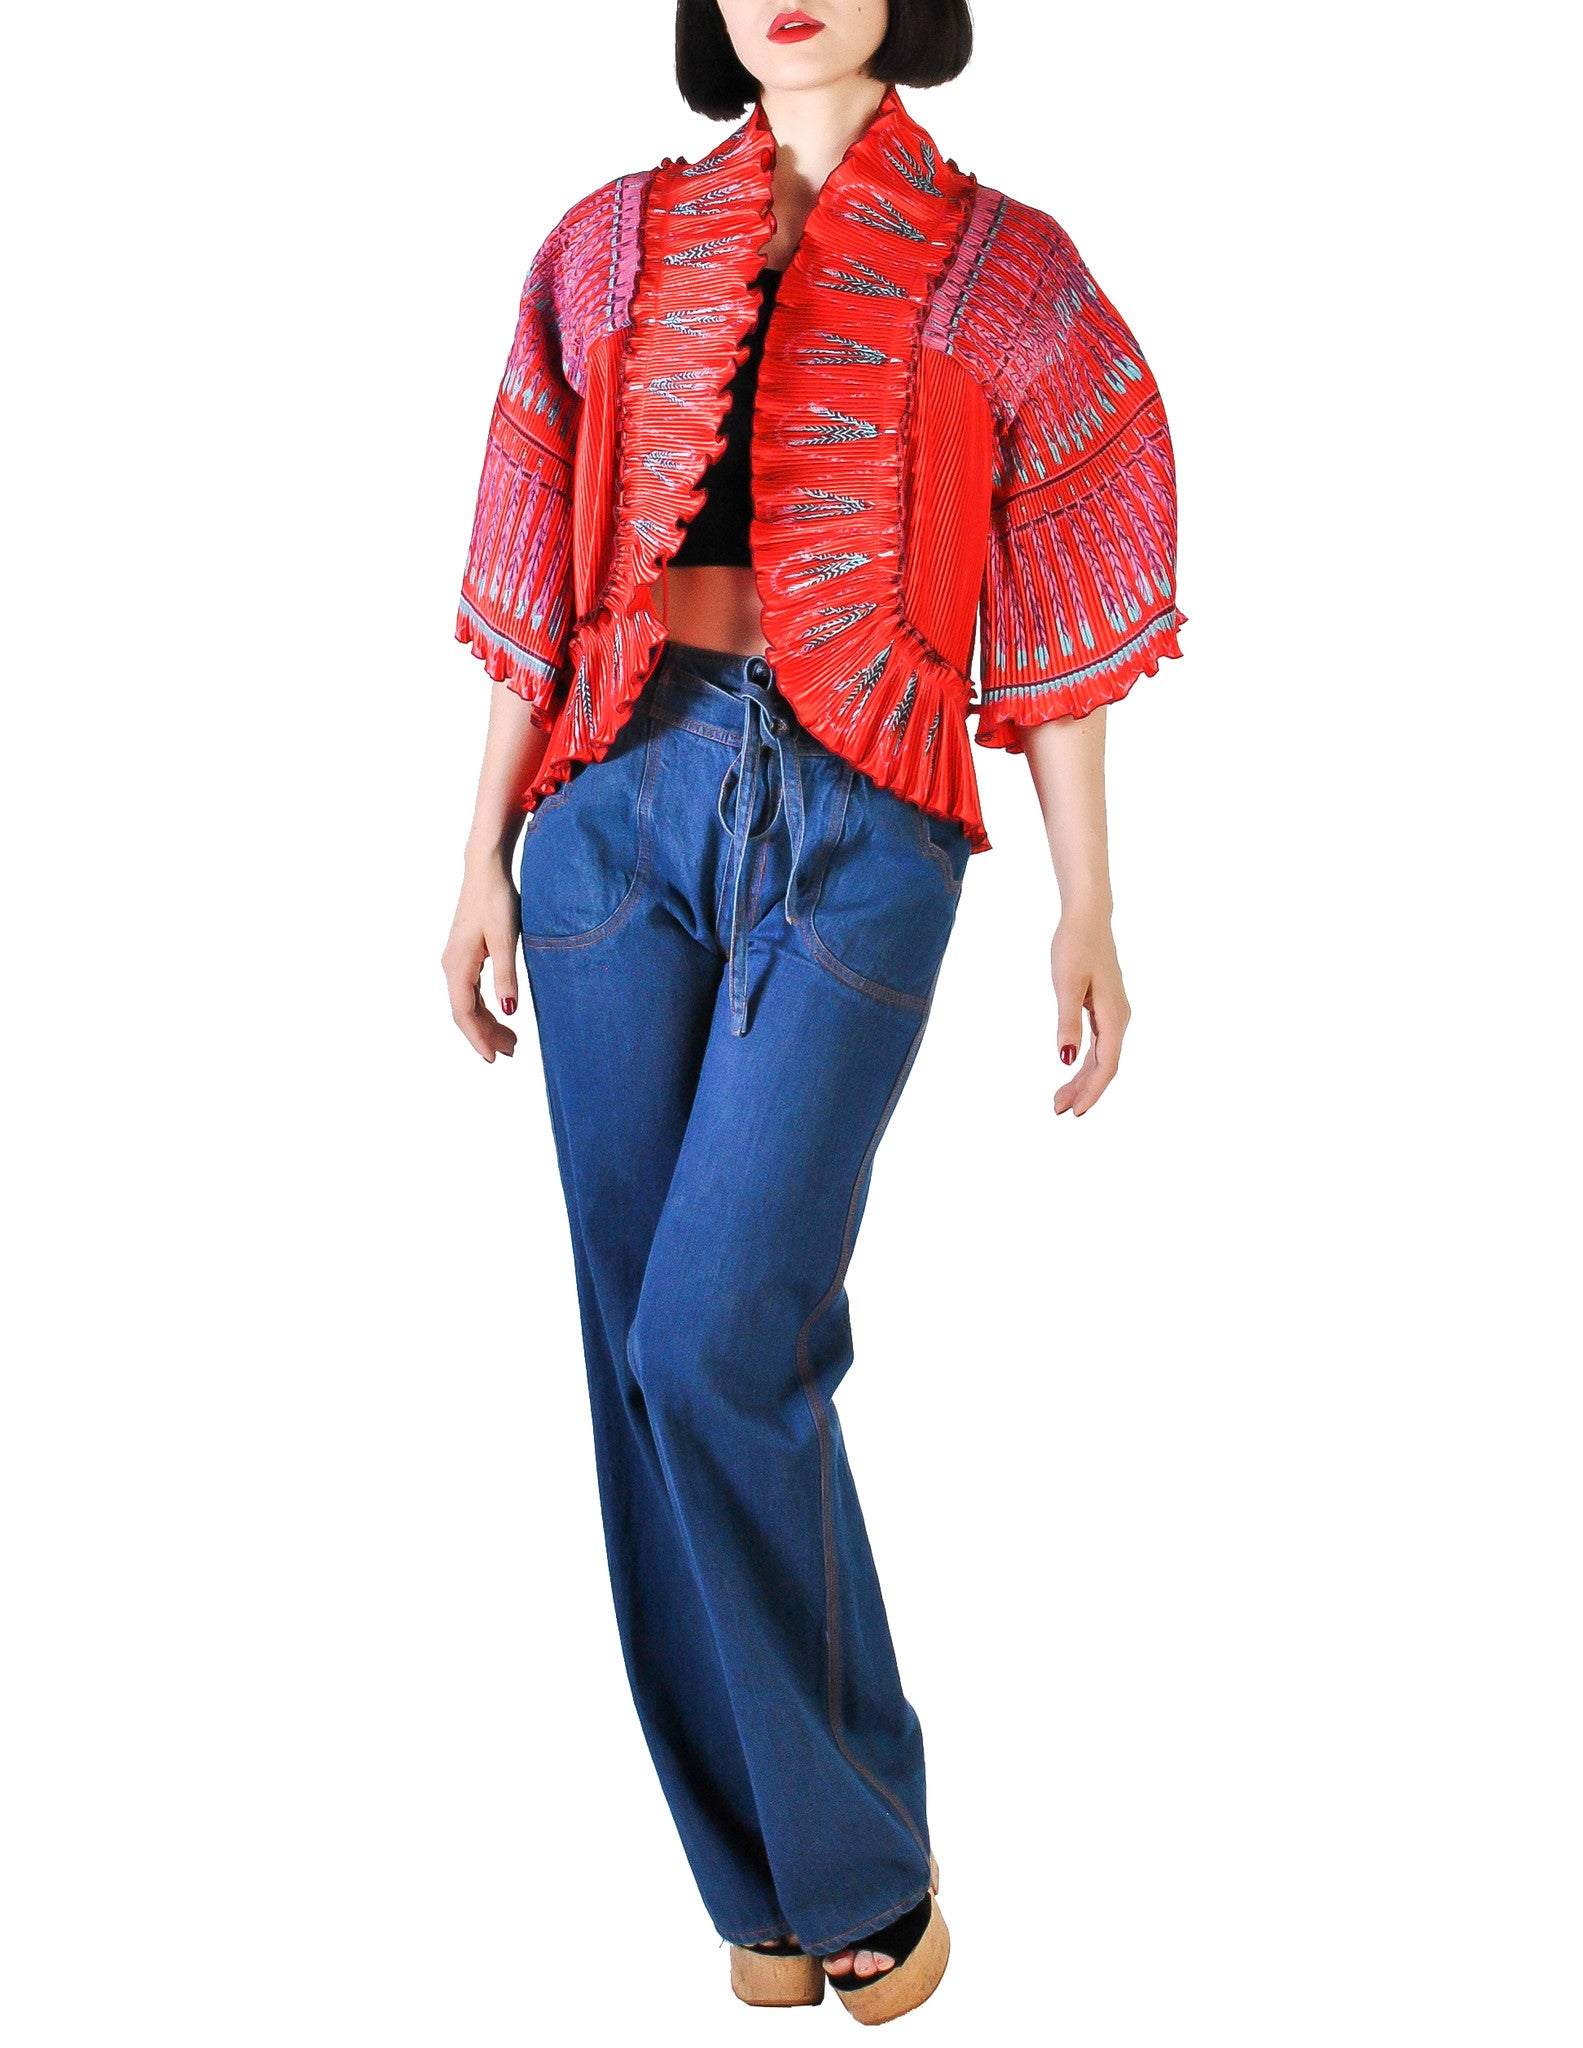 Zandra Rhodes Vintage Red Hand Painted Pleated Jacket - Amarcord Vintage Fashion  - 1